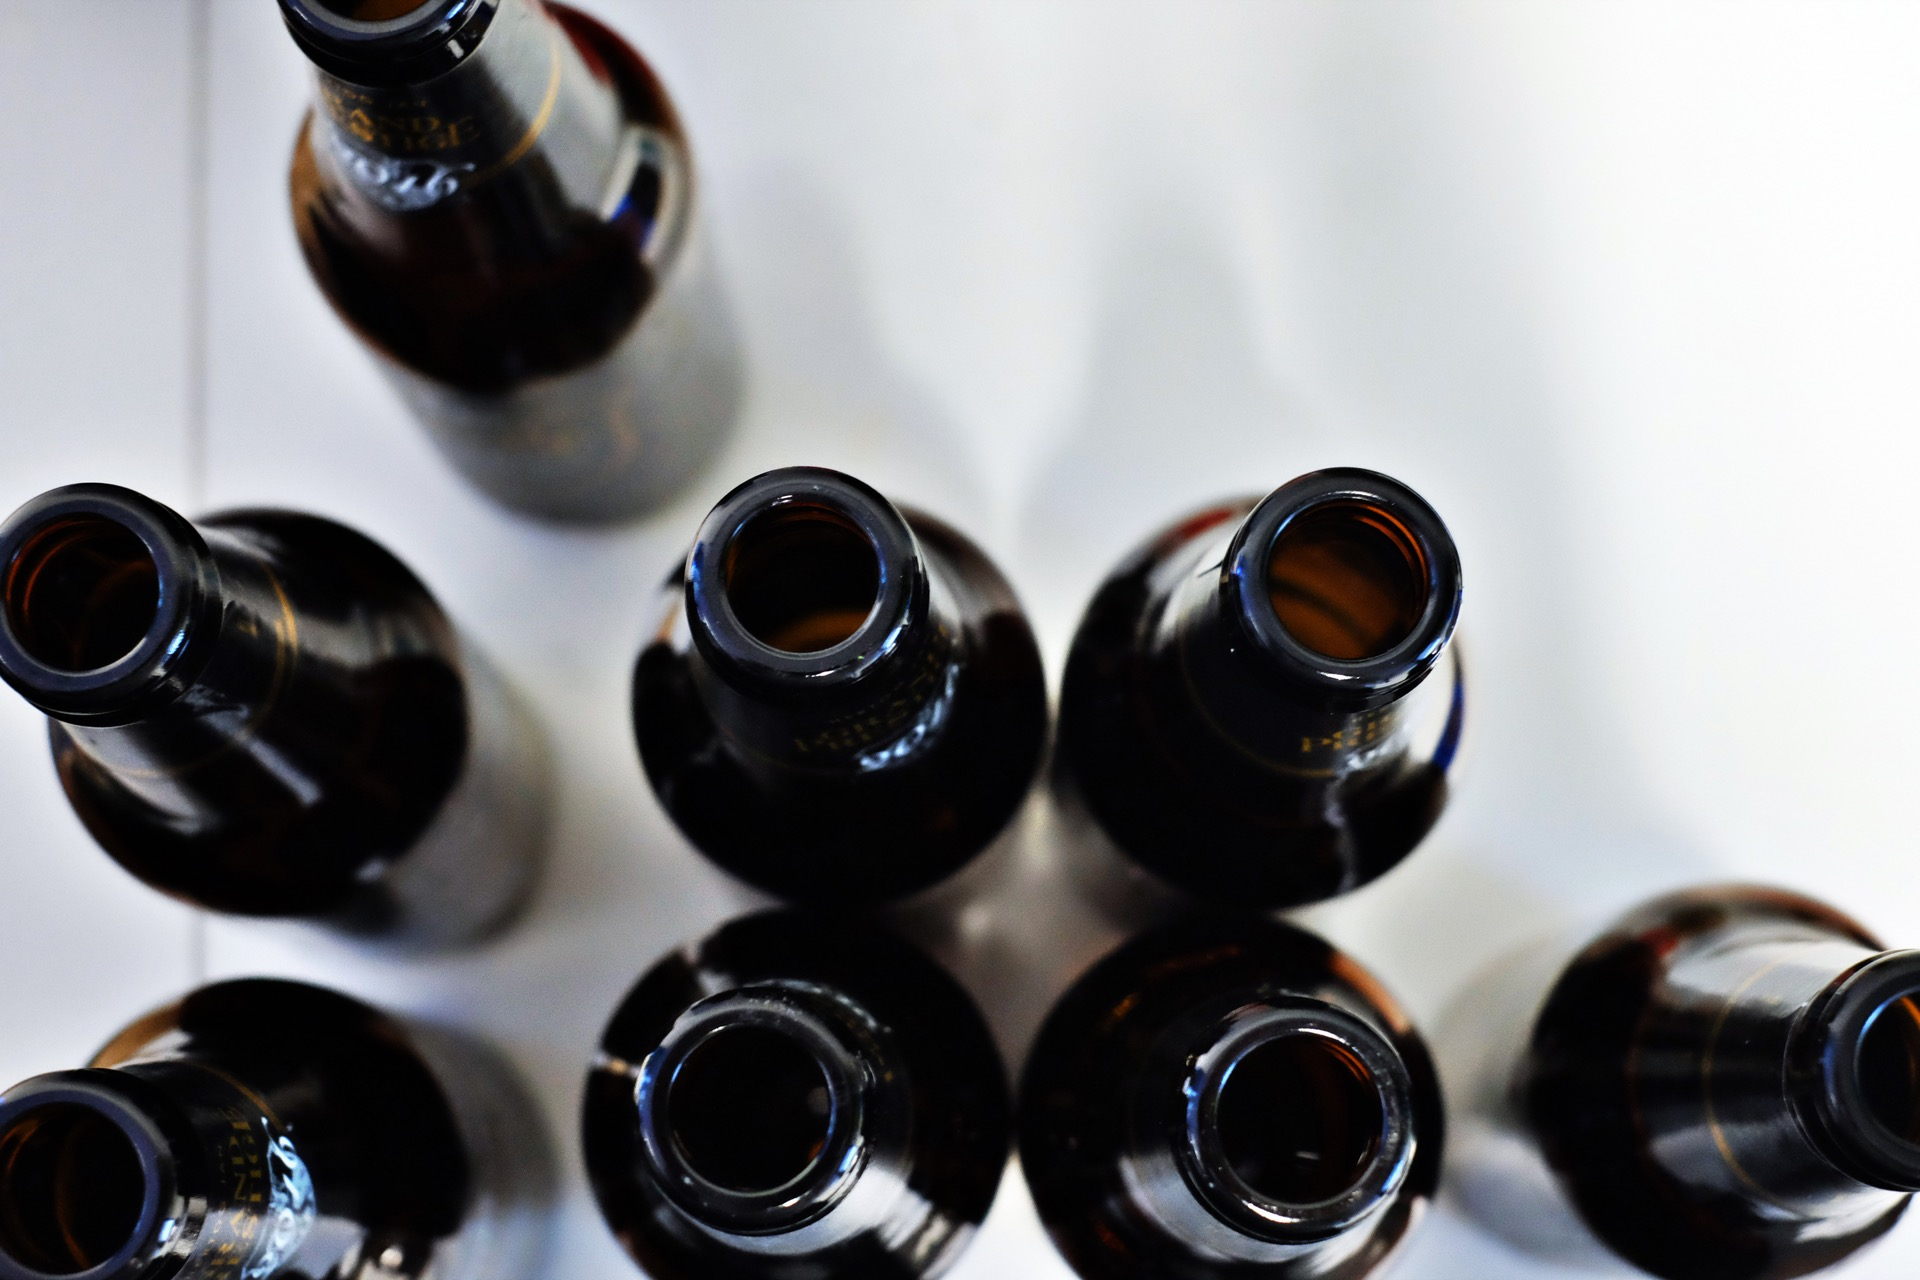 Empty beer bottles to represent cutting back on alcohol, one of Andy Kane's new year's resolutions